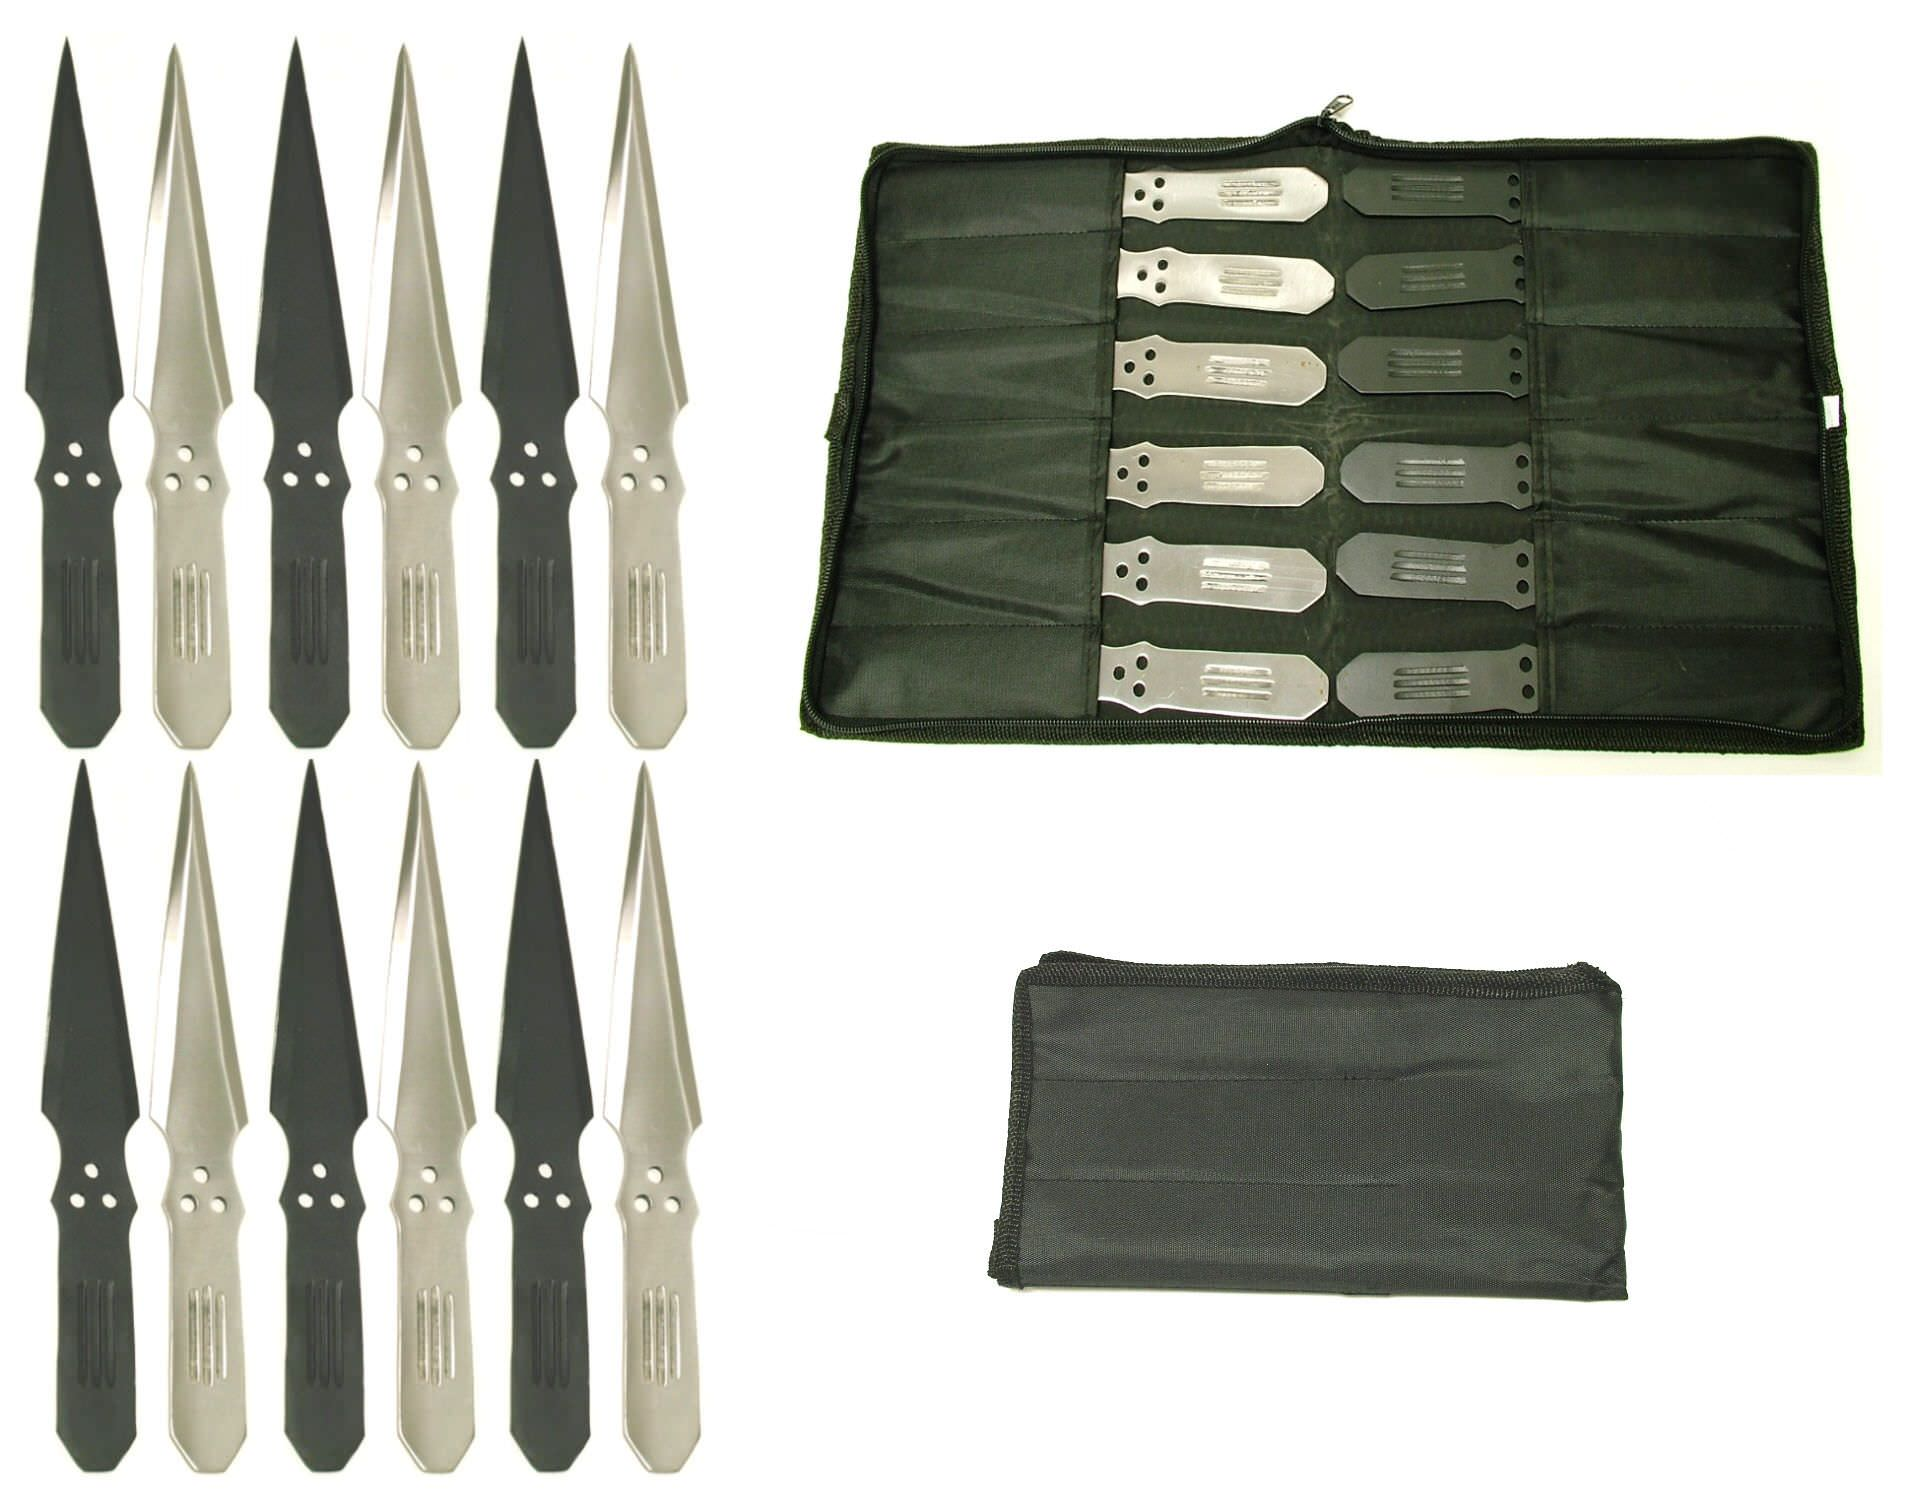 12 Pc Set Throwing Knives PAK56-12